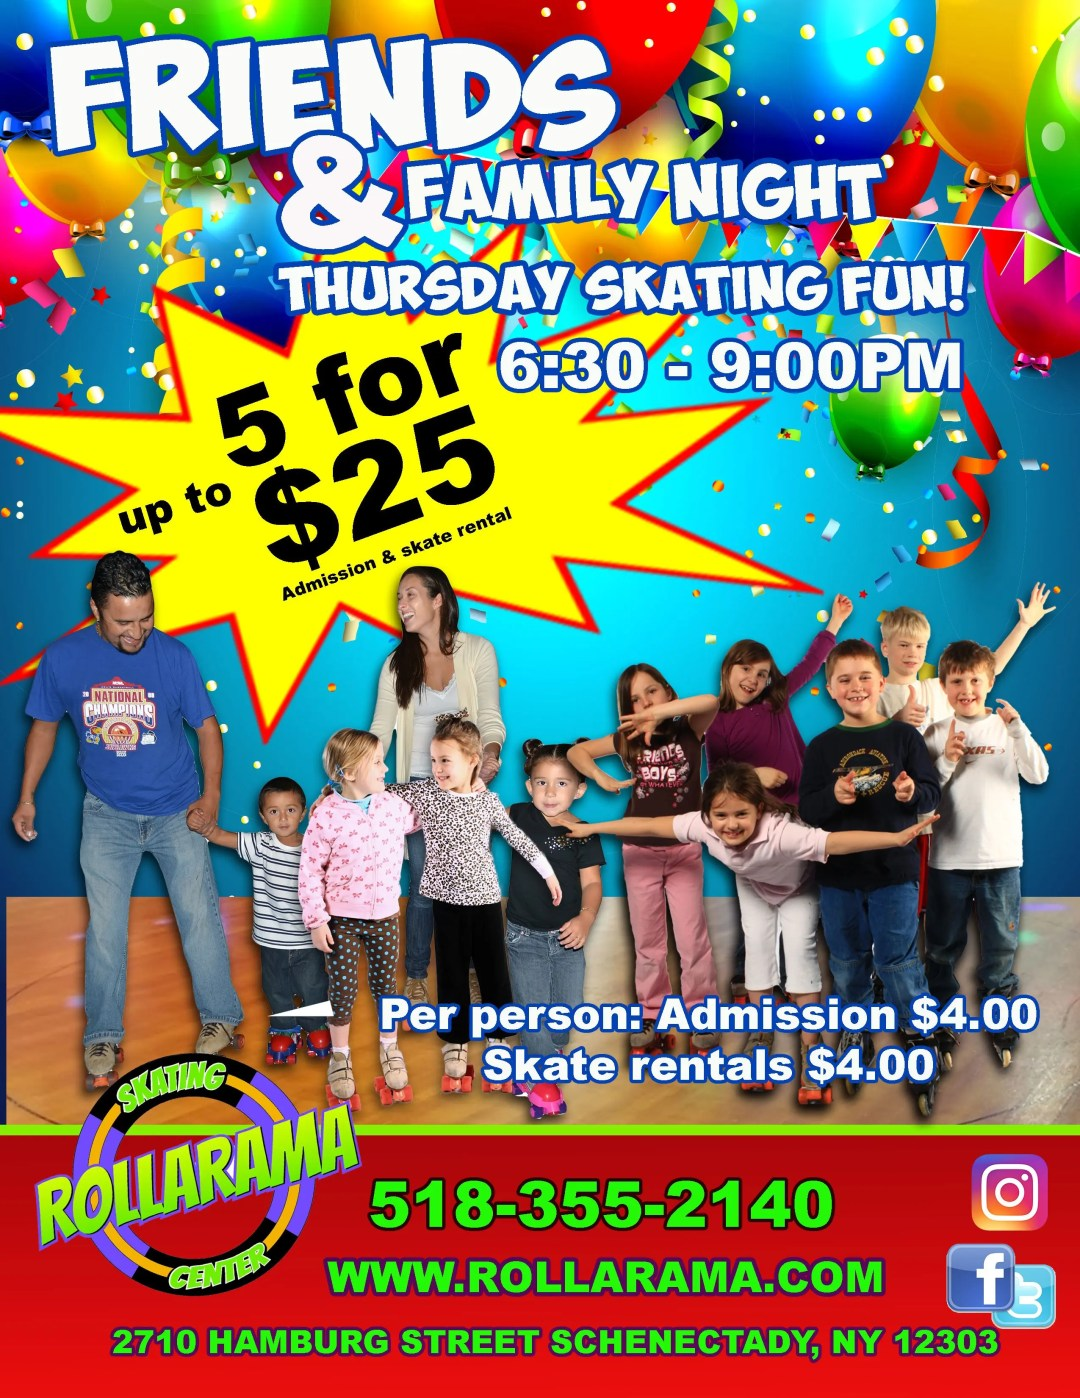 Friends and Family Skate Thursday Nights at Rollarama